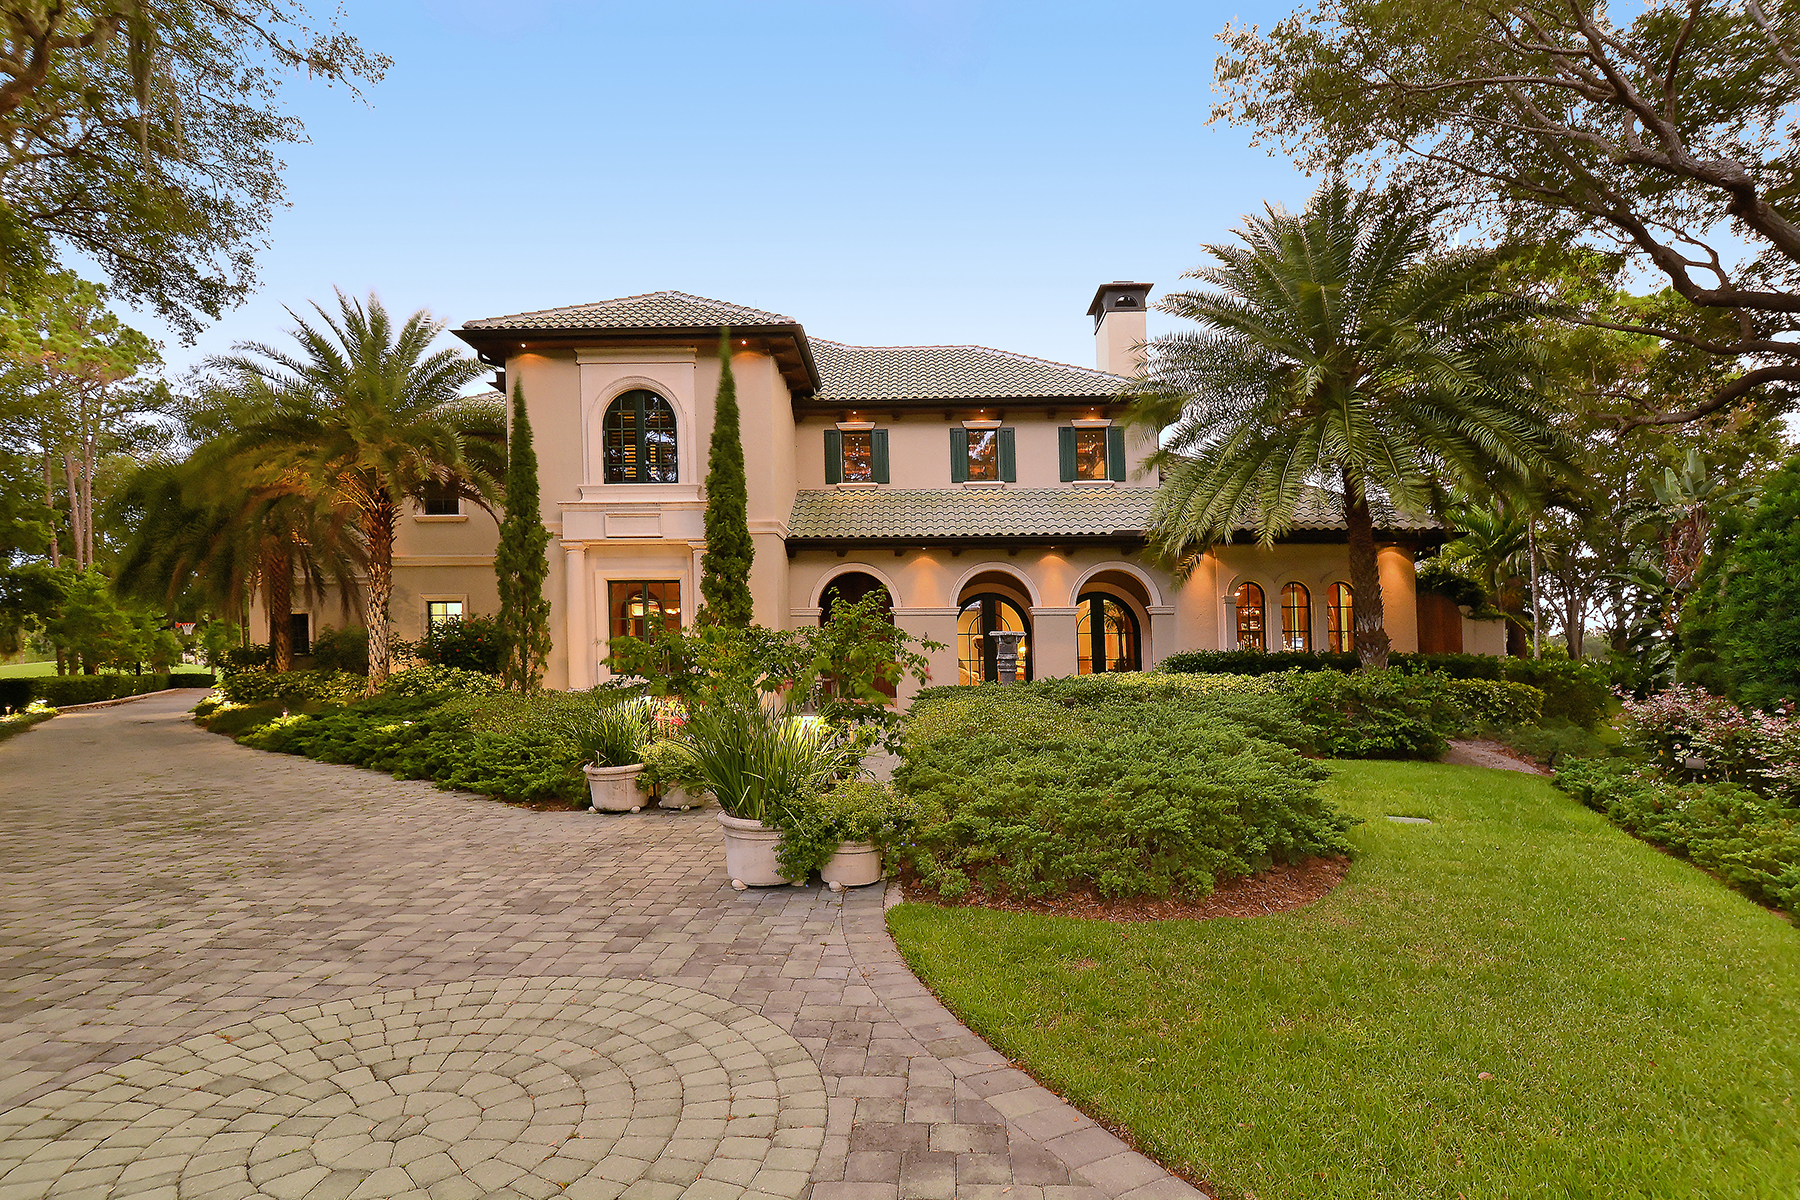 Villa per Vendita alle ore THE OAKS 931 Blue Heron Overlook Osprey, Florida, 34229 Stati Uniti